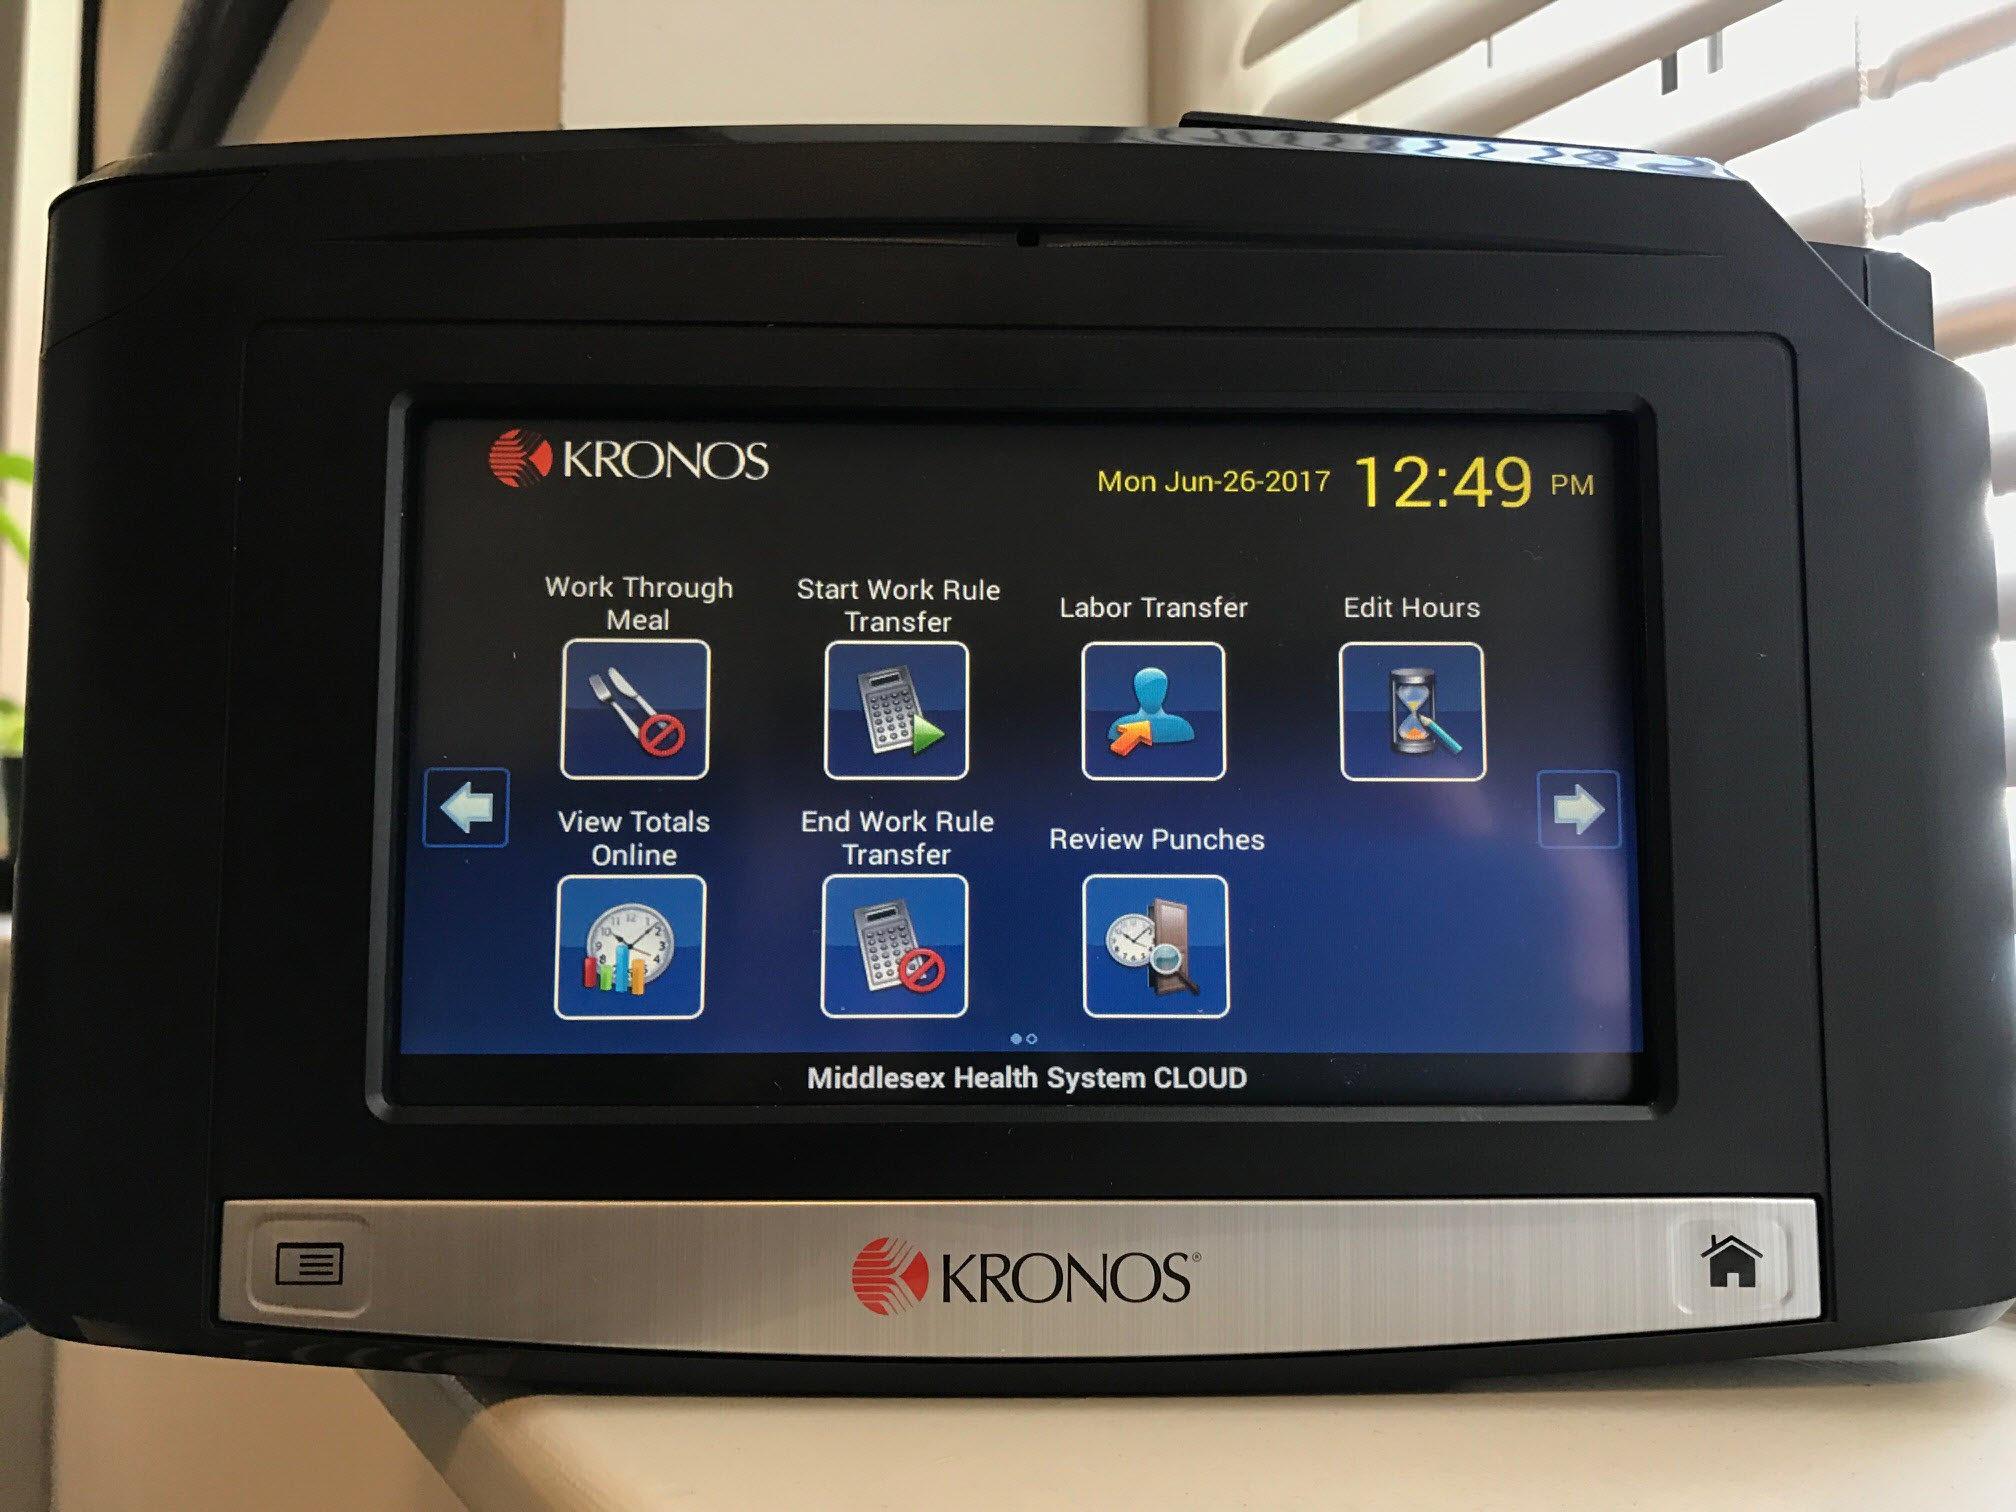 Instructions on how to use kronos time clock